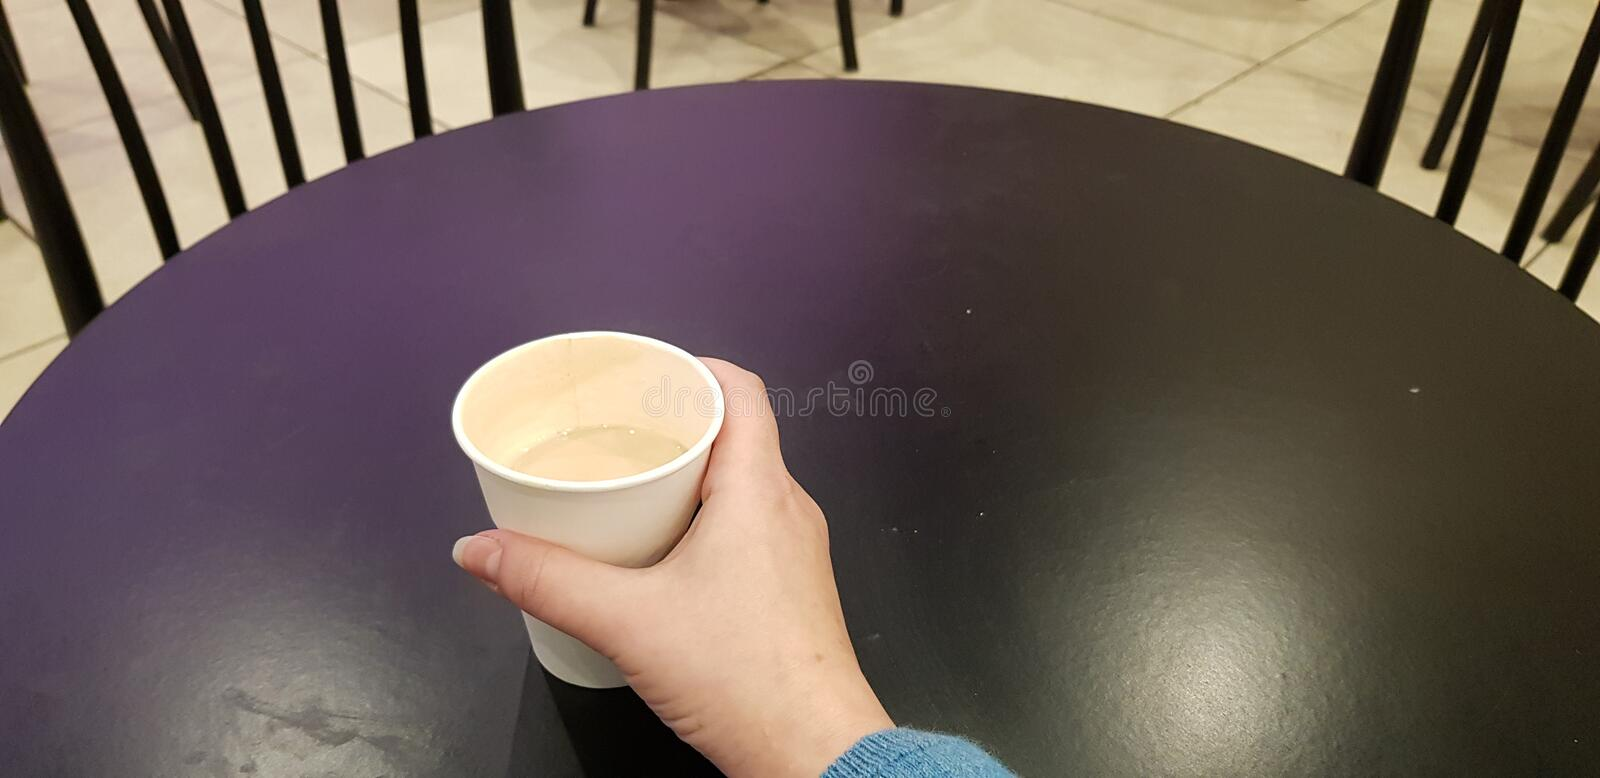 Cup of coffee in female hand on black table. Paper cup of coffee in female hand on black table with two empty chairs waiting for business meeting royalty free stock image